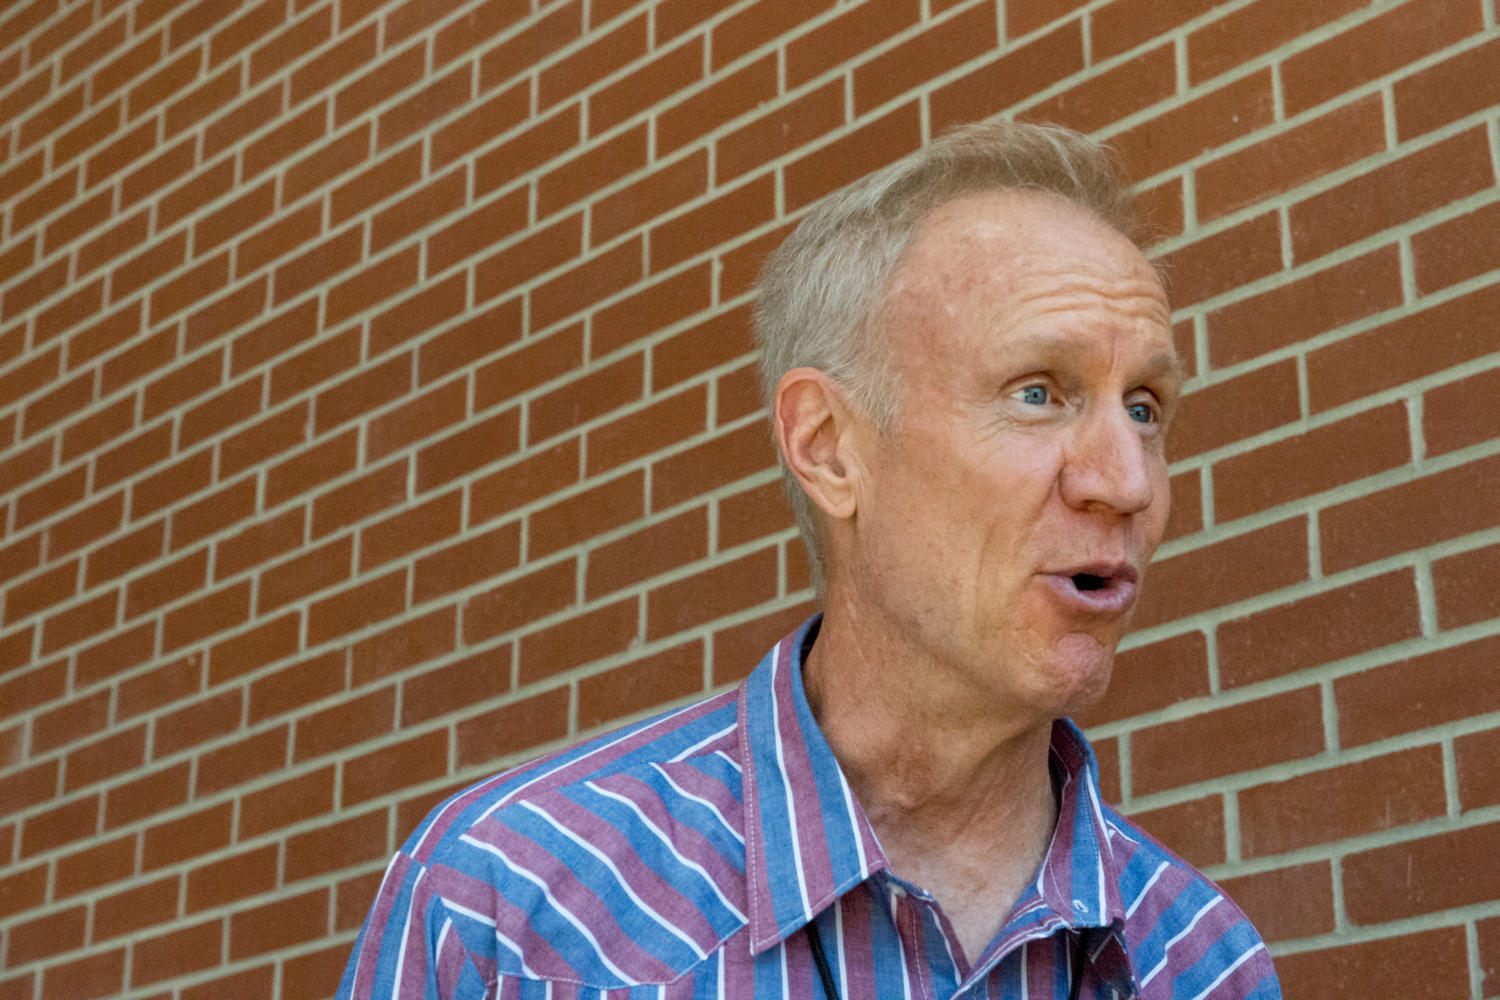 Governer of Illinois Bruce Rauner speaks to media after watching the total solar eclipse, Monday, Aug. 21, 2017, at SIU Arena in Carbondale. (Brian Muñoz | @BrianMMunoz)